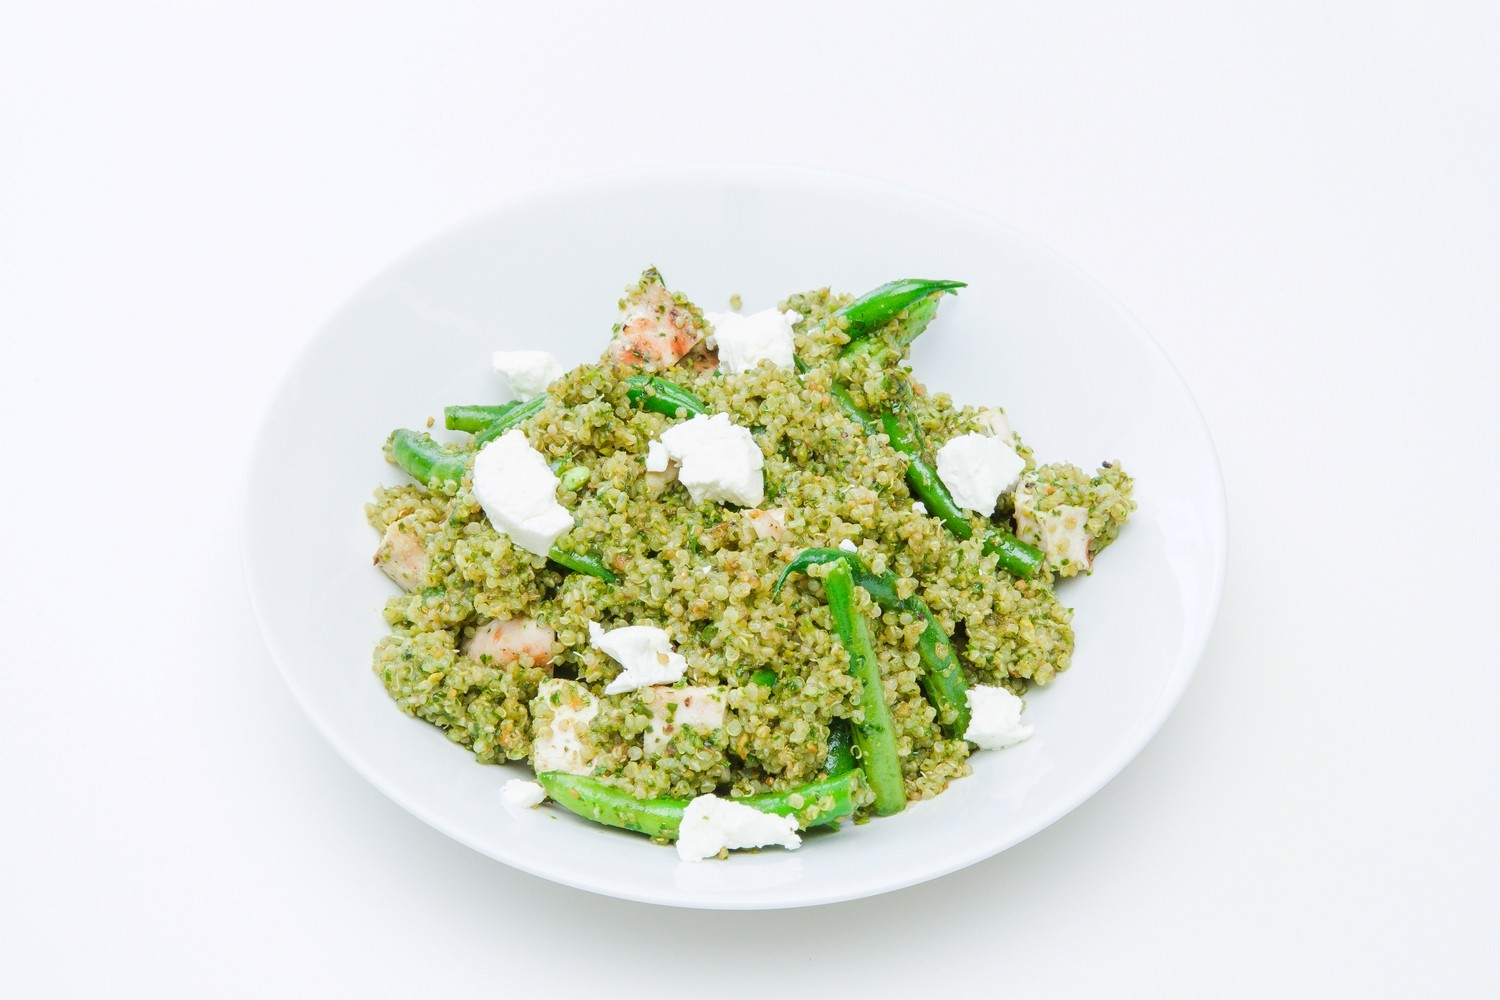 Grilled Chicken over Sprouted Quinoa Green Bean Salad with Pistachio Pesto and Goat Cheese